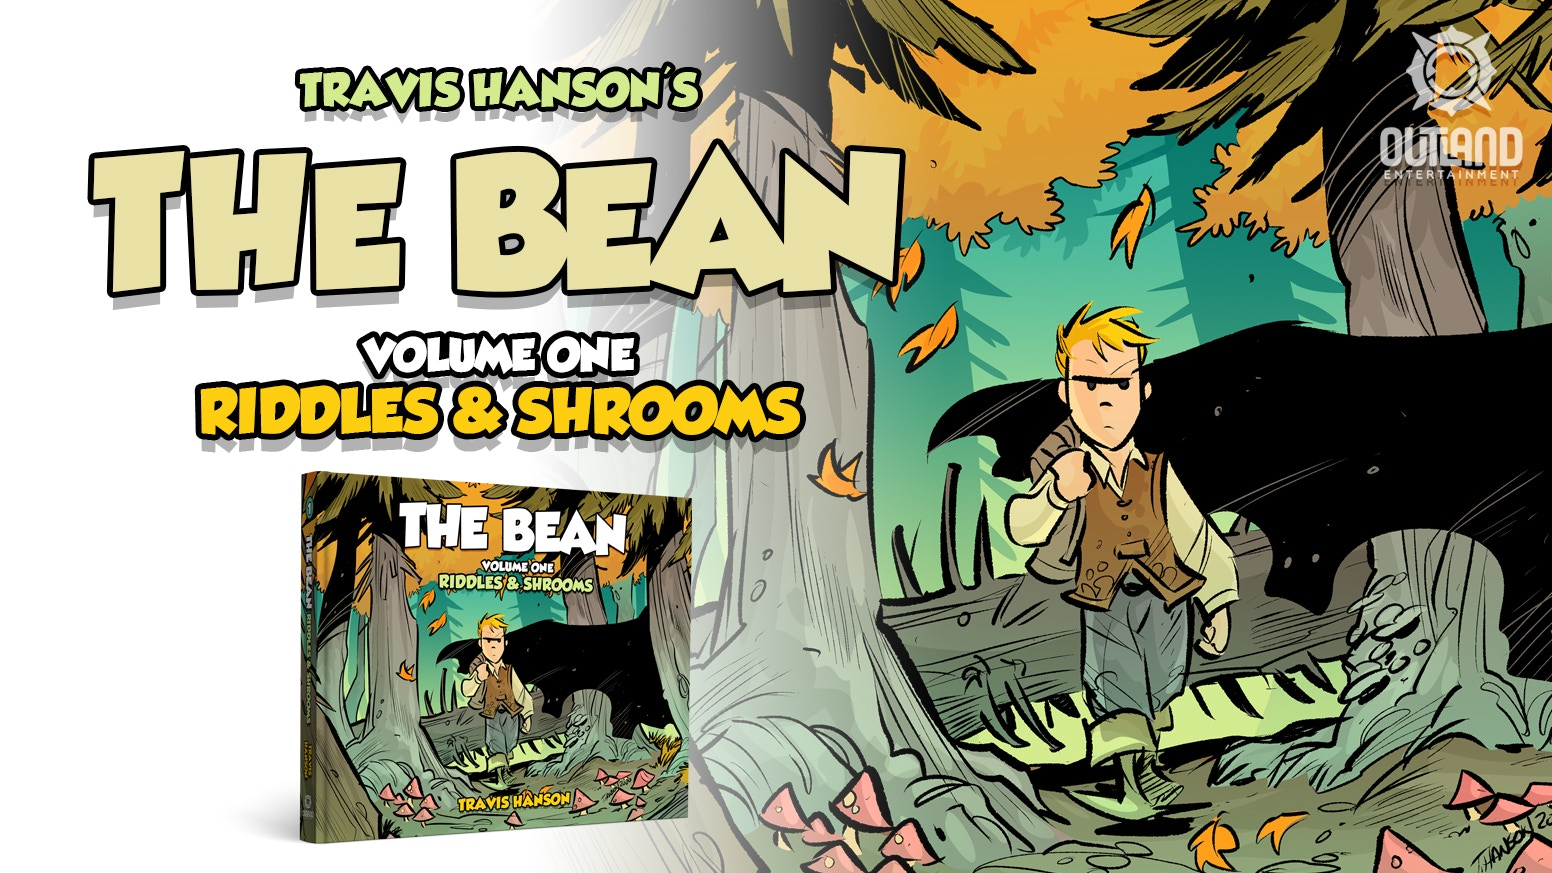 Adventure into the World of the Broken Moon with The Bean graphic novel series in COLOR for the first time in print!